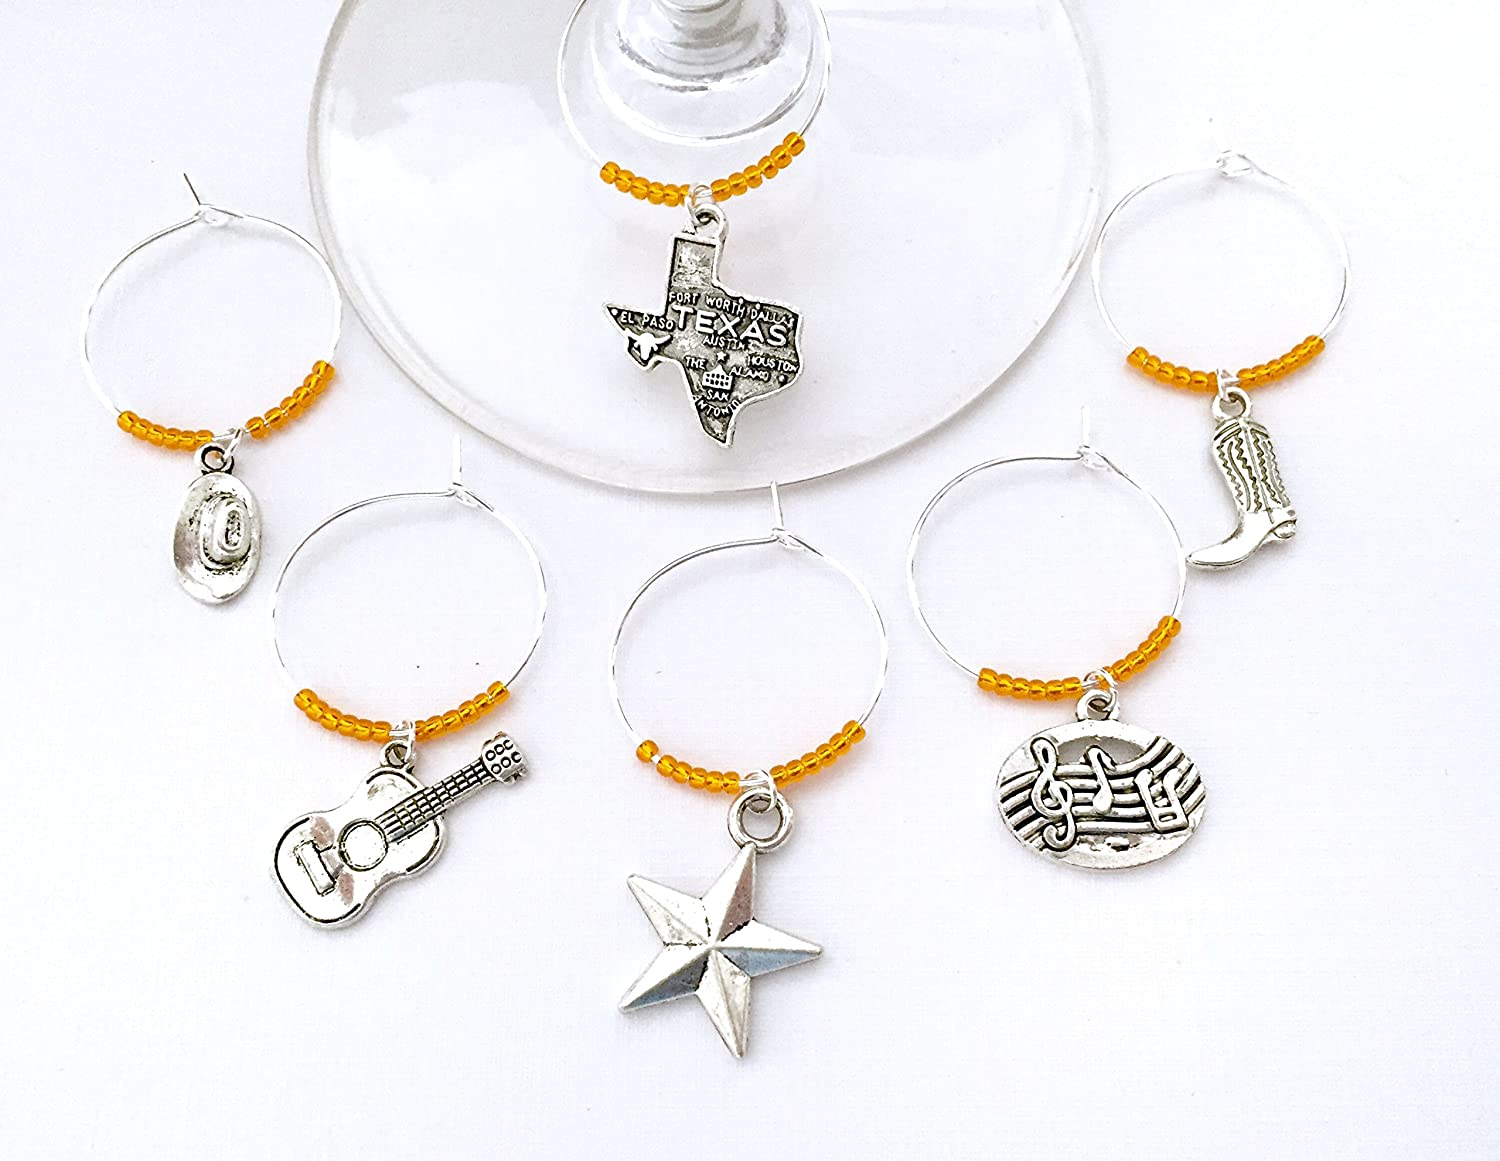 Cowboy Hat ORANGE BEADS. Guitar Set of 6 Austin Texas Wine Charms and Texas Star Charms include Texas Charm Inspired by Austin Music and Country scene Cowboy Boots Music Notes